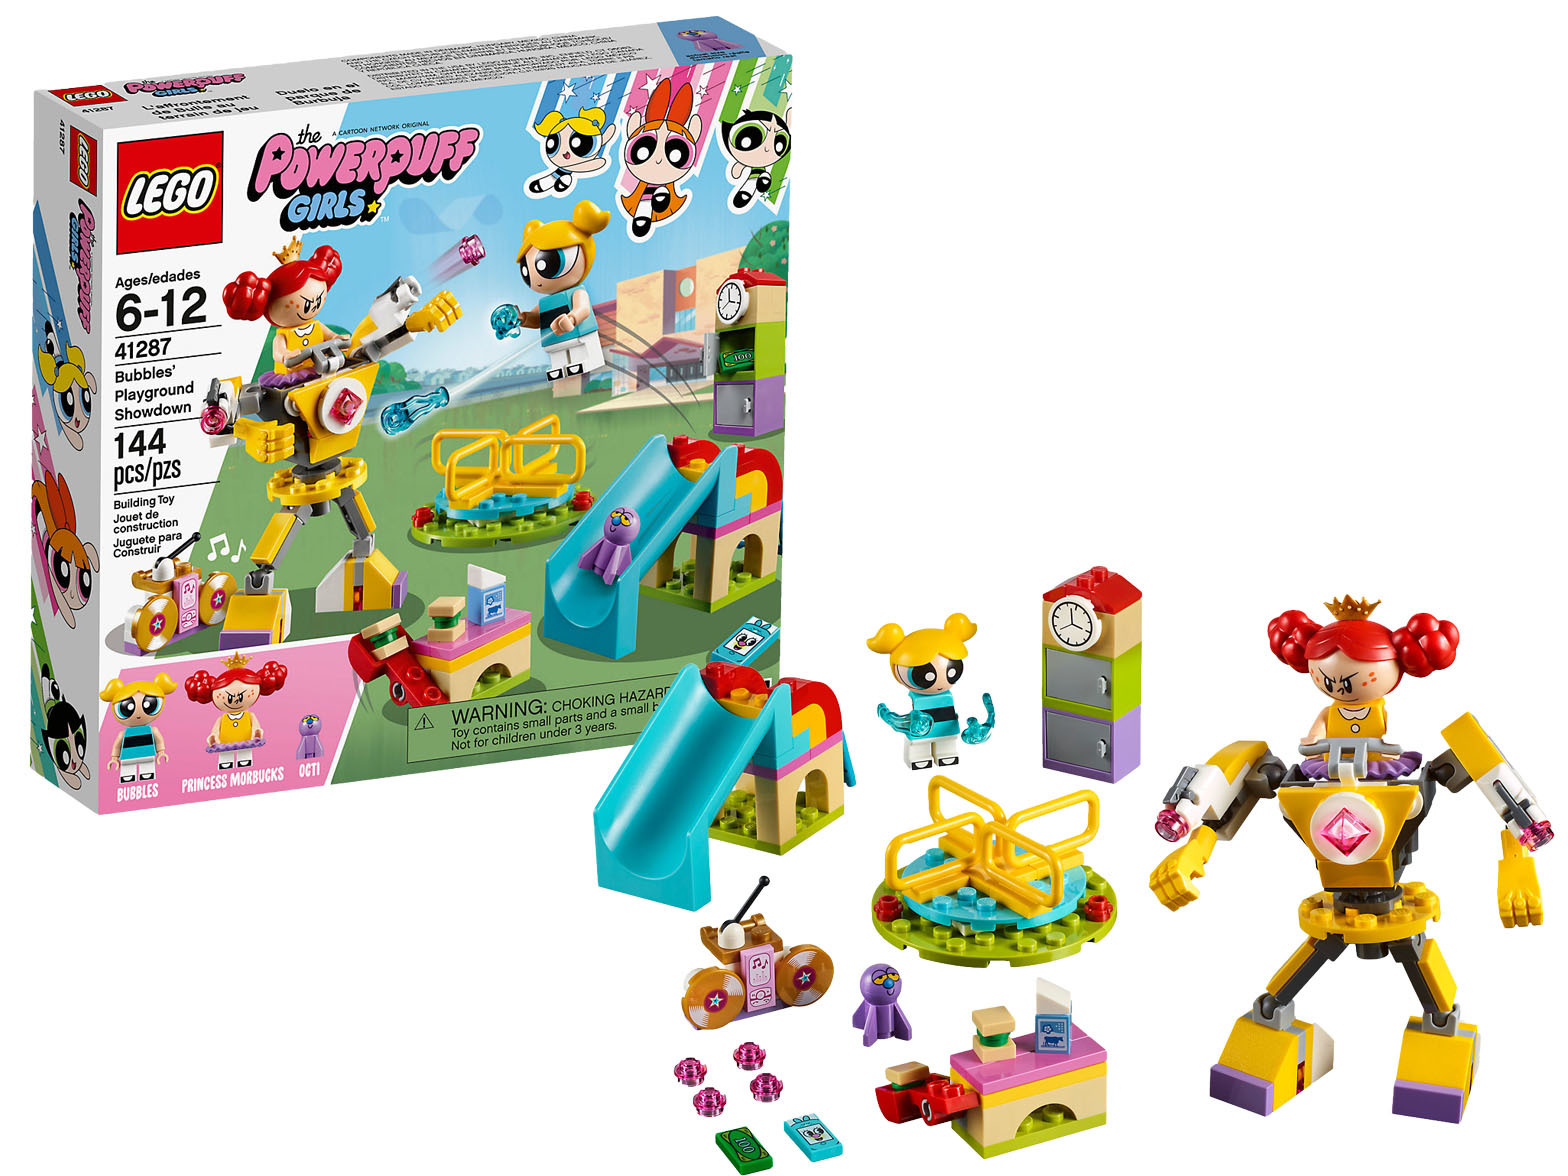 LEGO POWERPUFF GIRLS #41287 Bubbles' Playground Showdown - New Factory Sealed